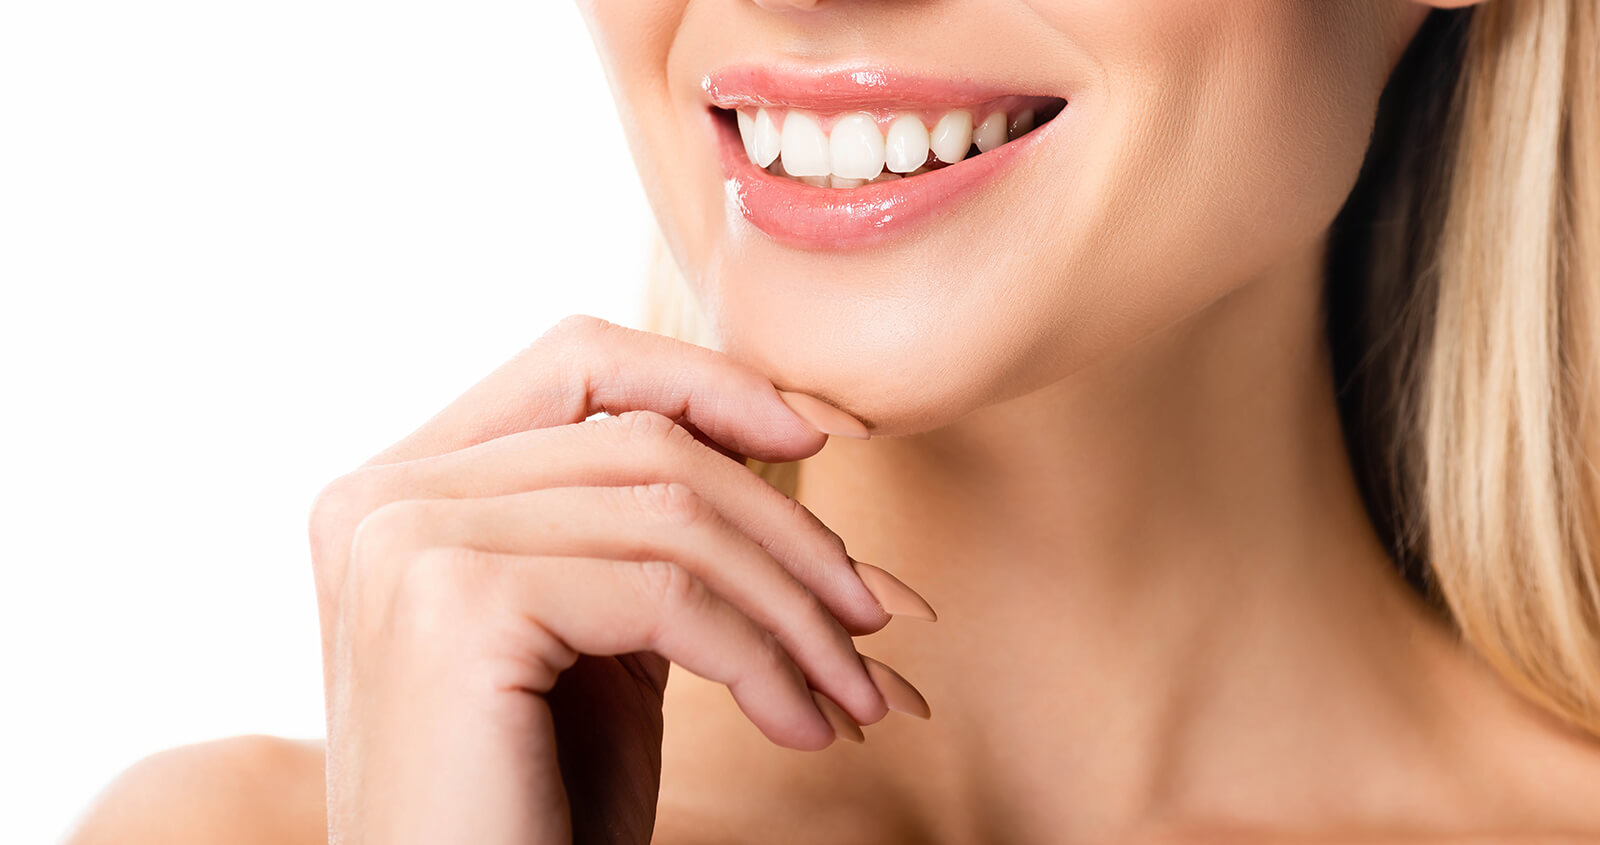 Overland Park, KS, dentist helps patients improve their smiles with KoR whitening